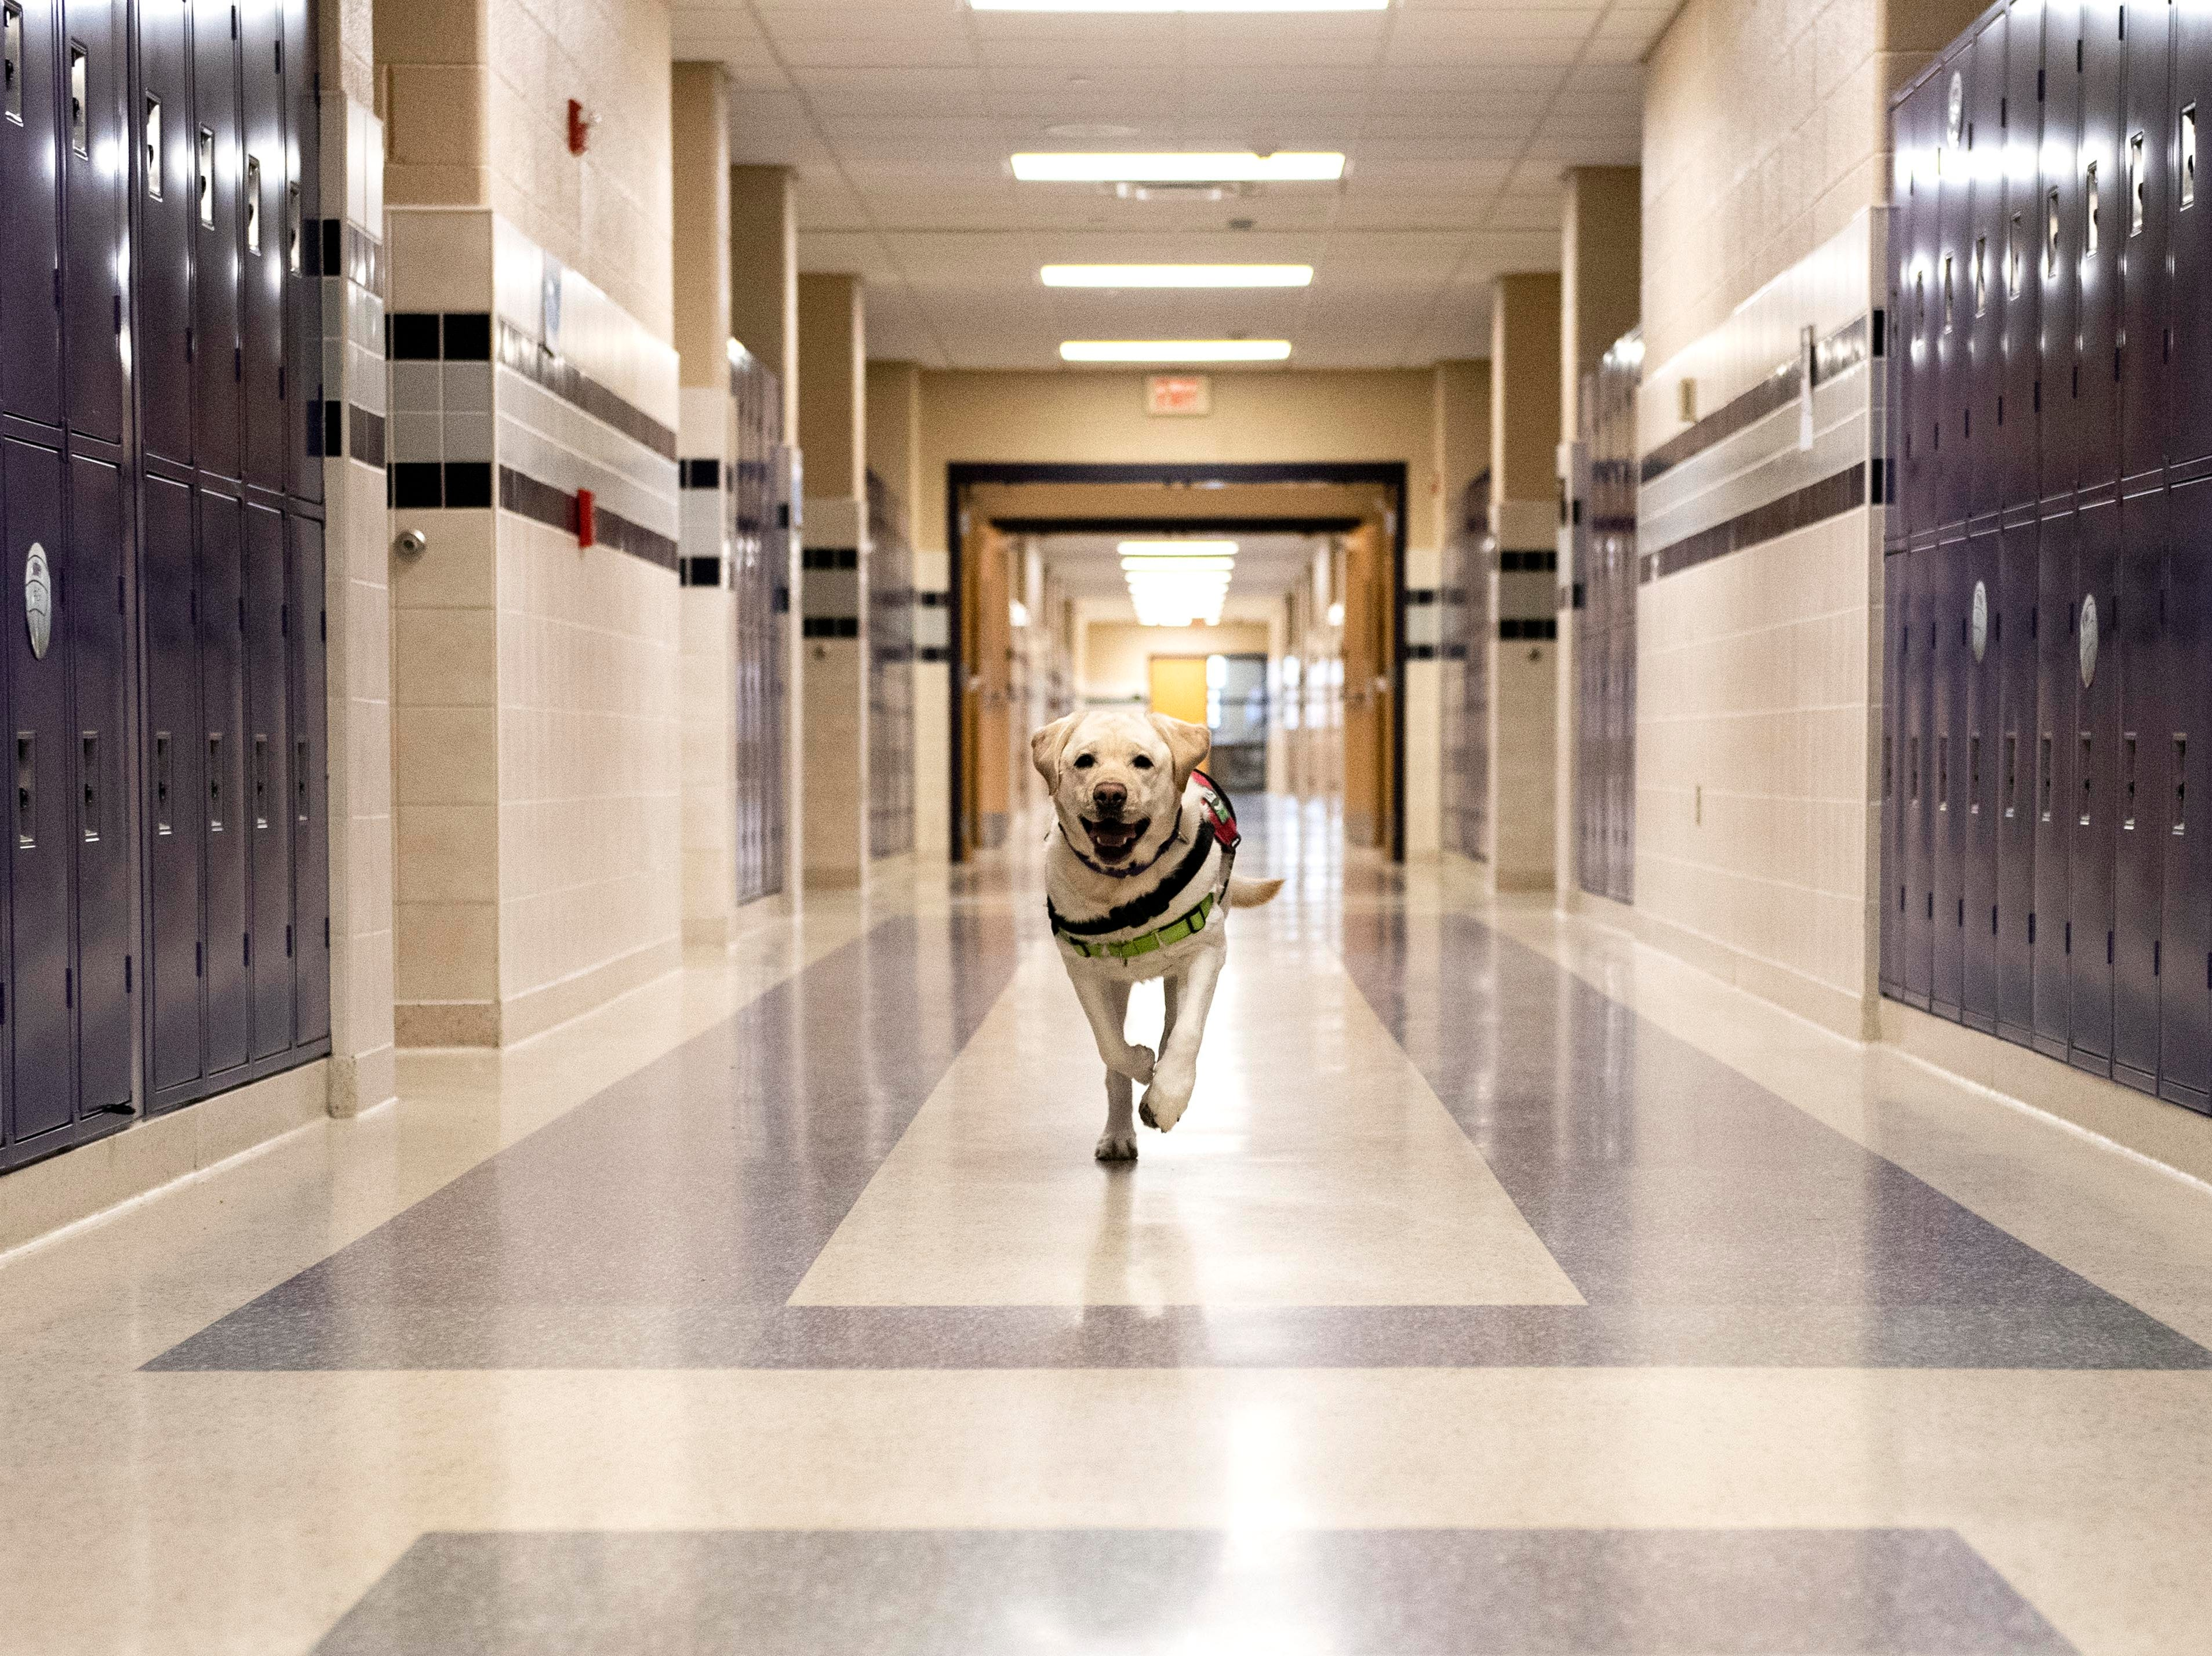 Murray runs up the hallway at Northern York High School for a photo on Wednesday, Nov. 14, 2018. Murray is one of seven service dogs throughout Northern York School District. The dogs can do everything from helping students calm down to closing doors.